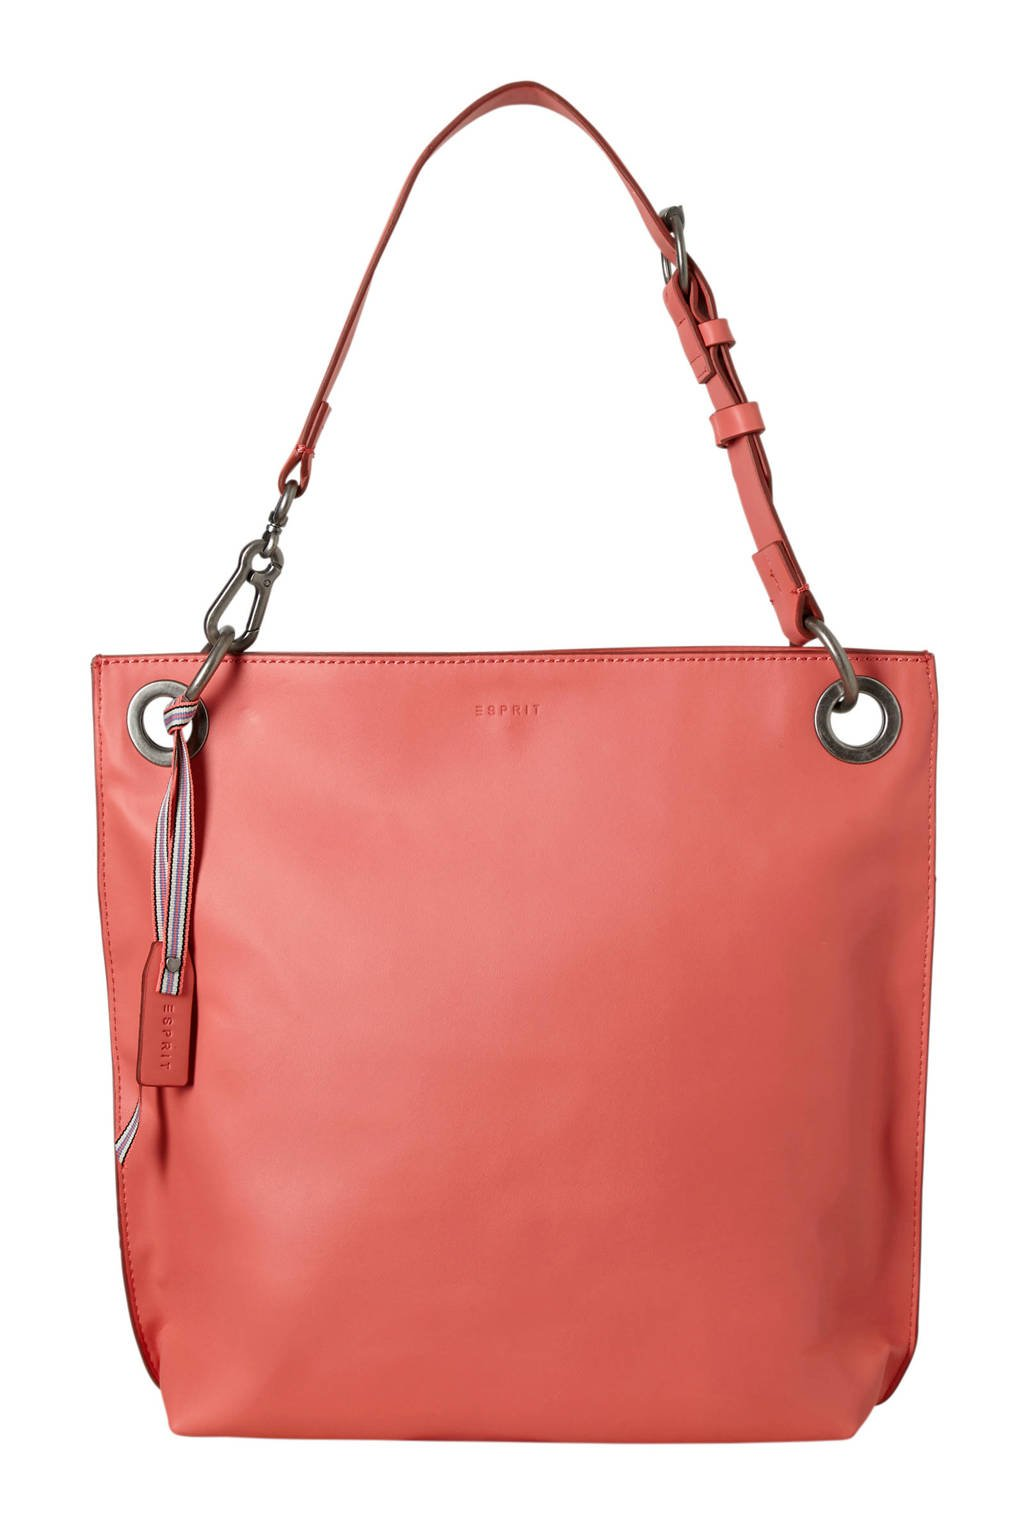 ESPRIT   handtas Lilly Hobo rood, Rood